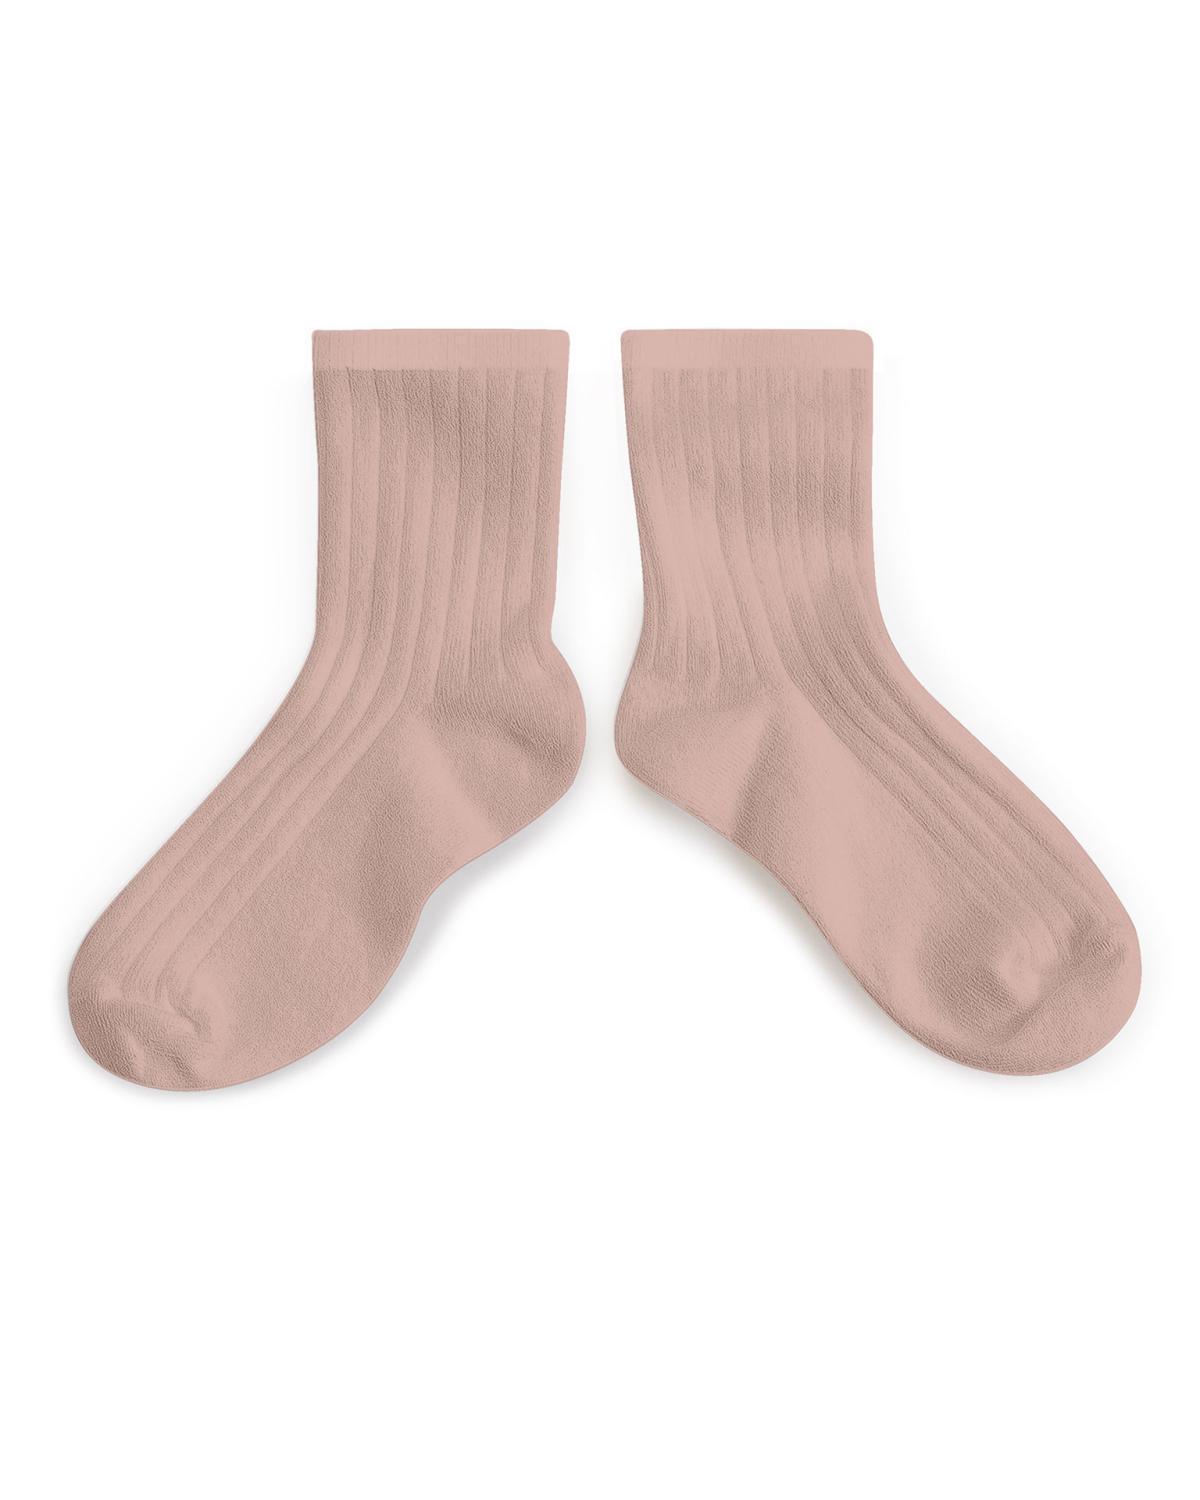 Little collegien accessories 18/20 ankle socks in vieux rose